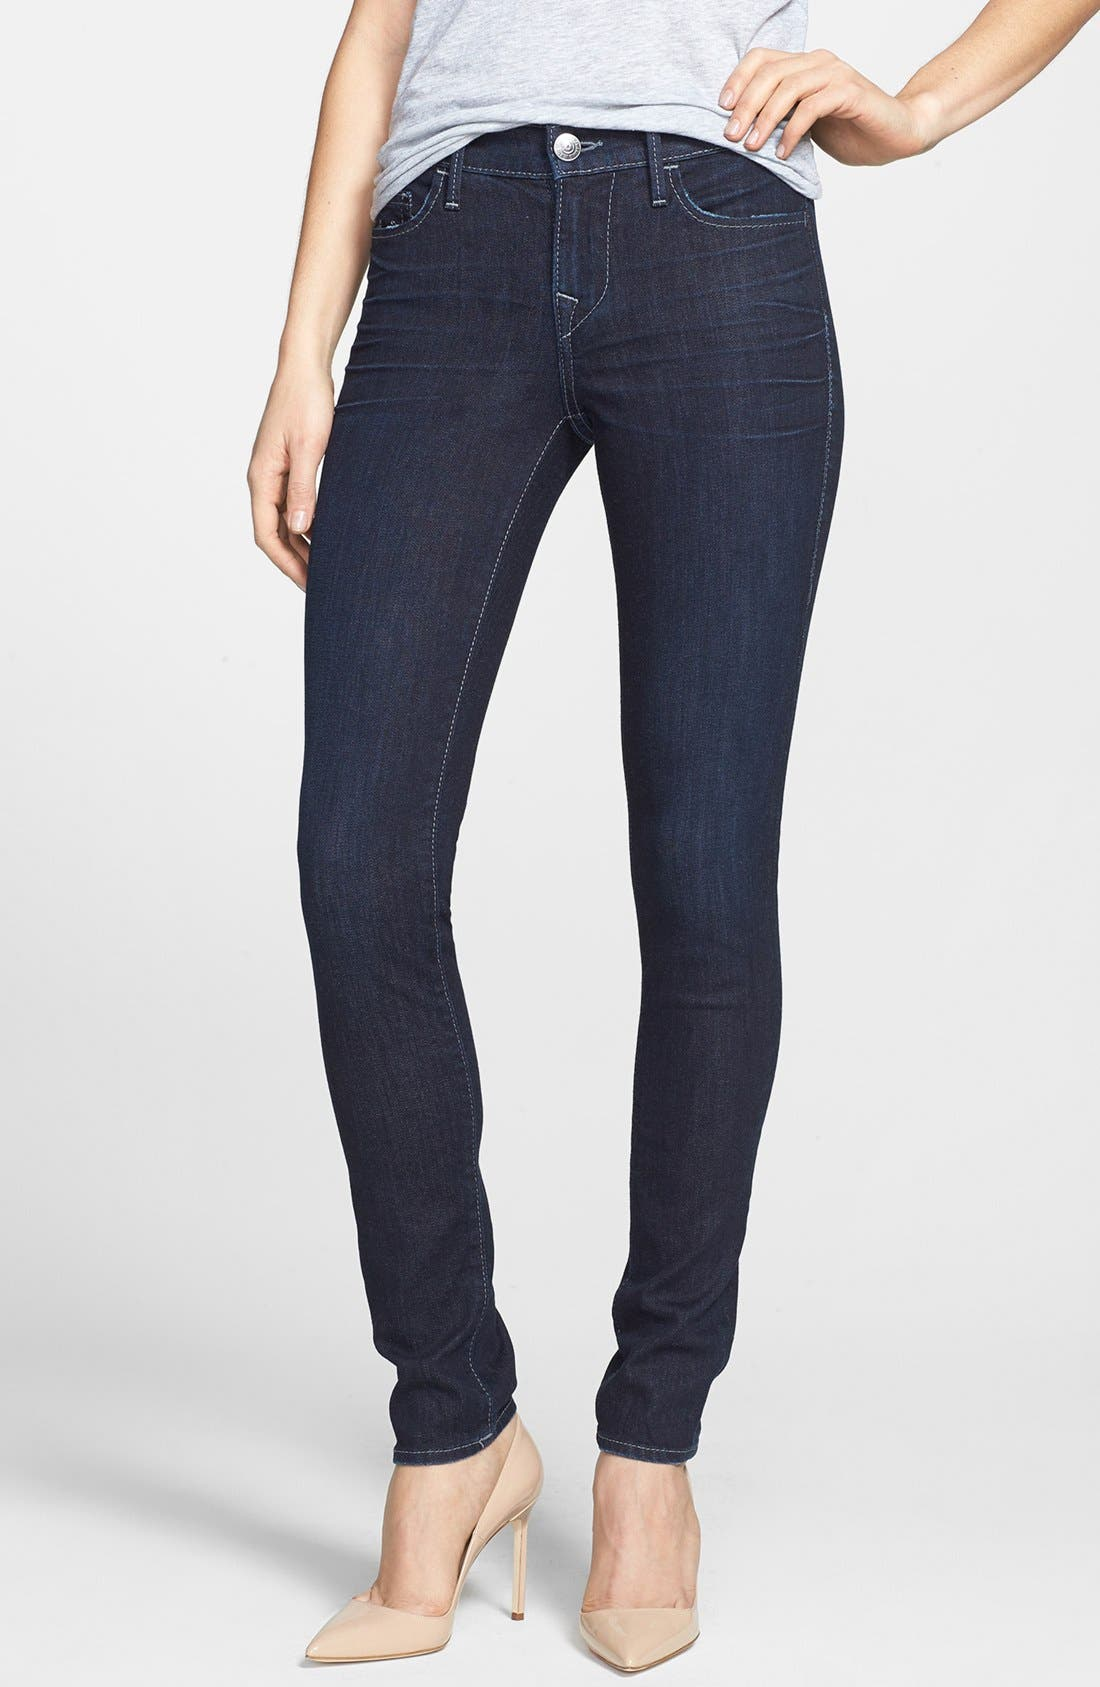 Alternate Image 1 Selected - True Religion Brand Jeans 'Abbey' Super Skinny Jeans (Baltic Ink)